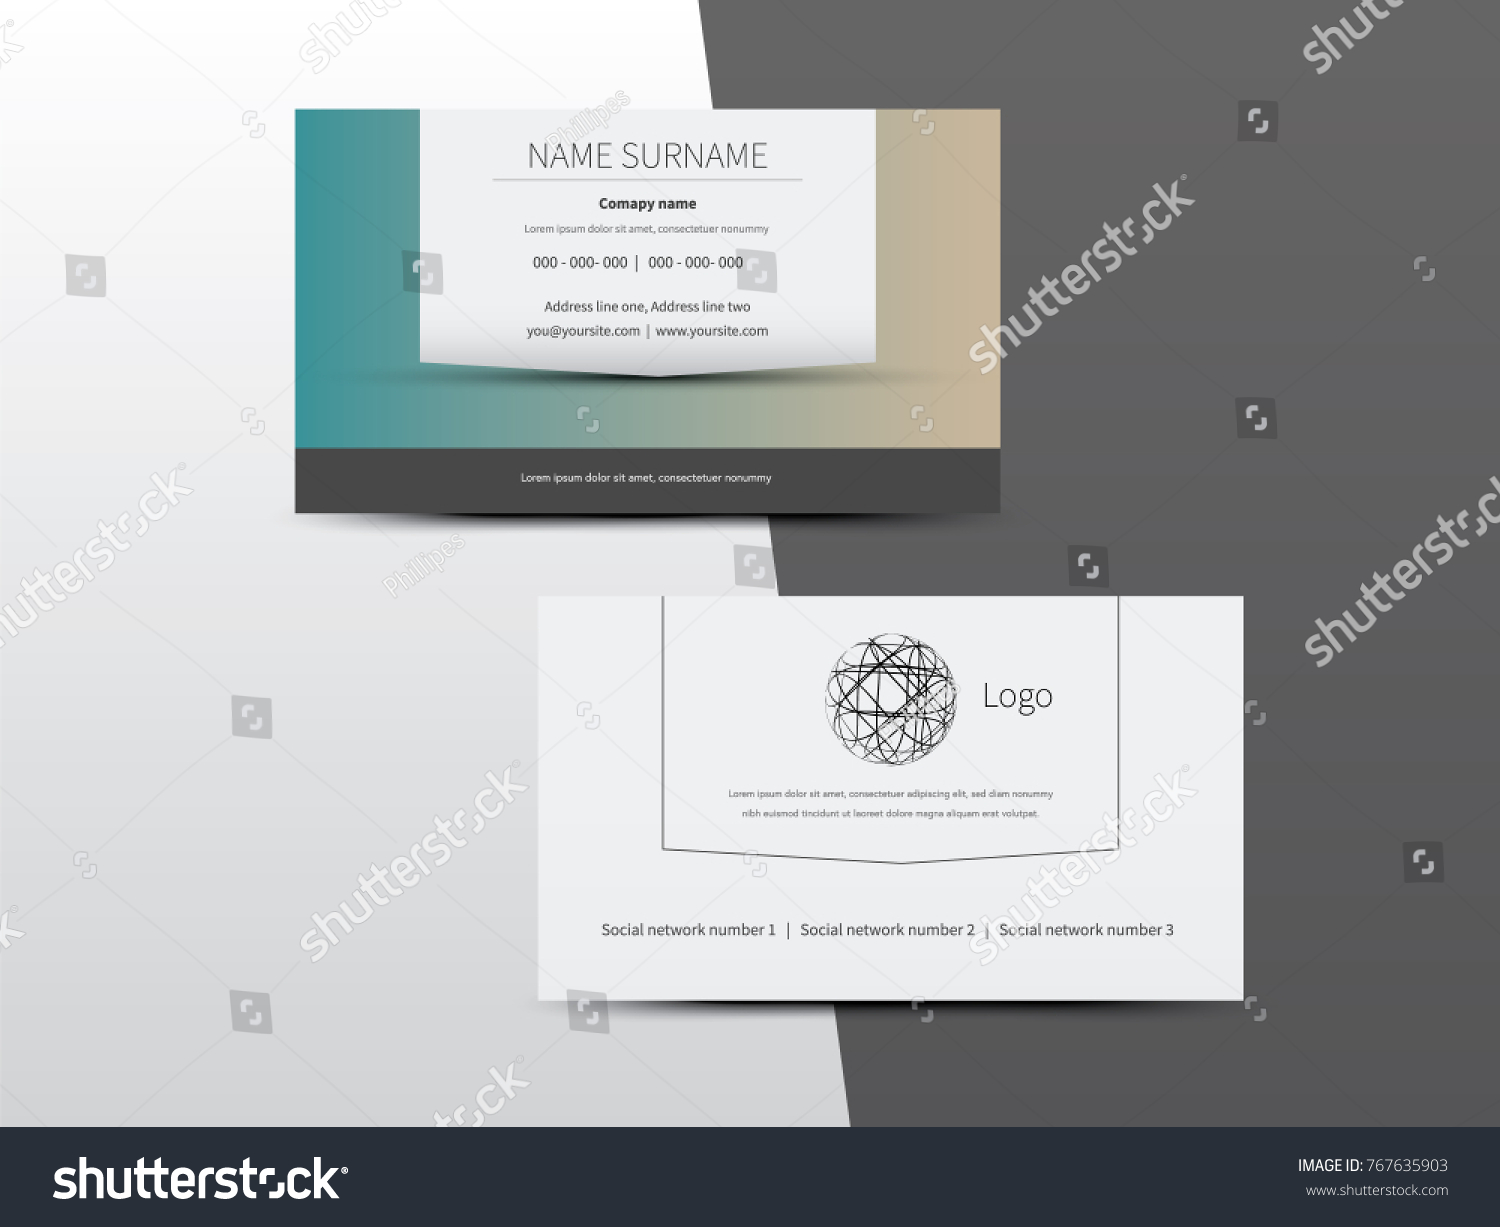 Business card with two addresses images free business cards business cards with 2 logos choice image free business cards vector business card white shape front magicingreecefo Image collections